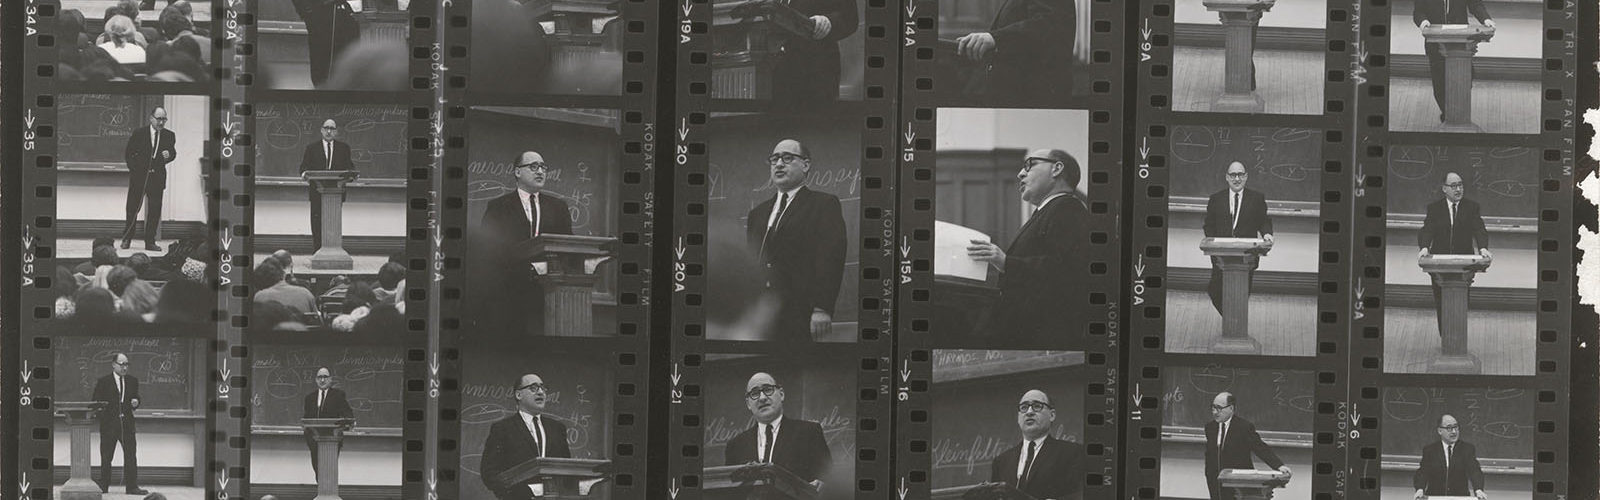 1960 - Mosse Lecturing at UW-Madison